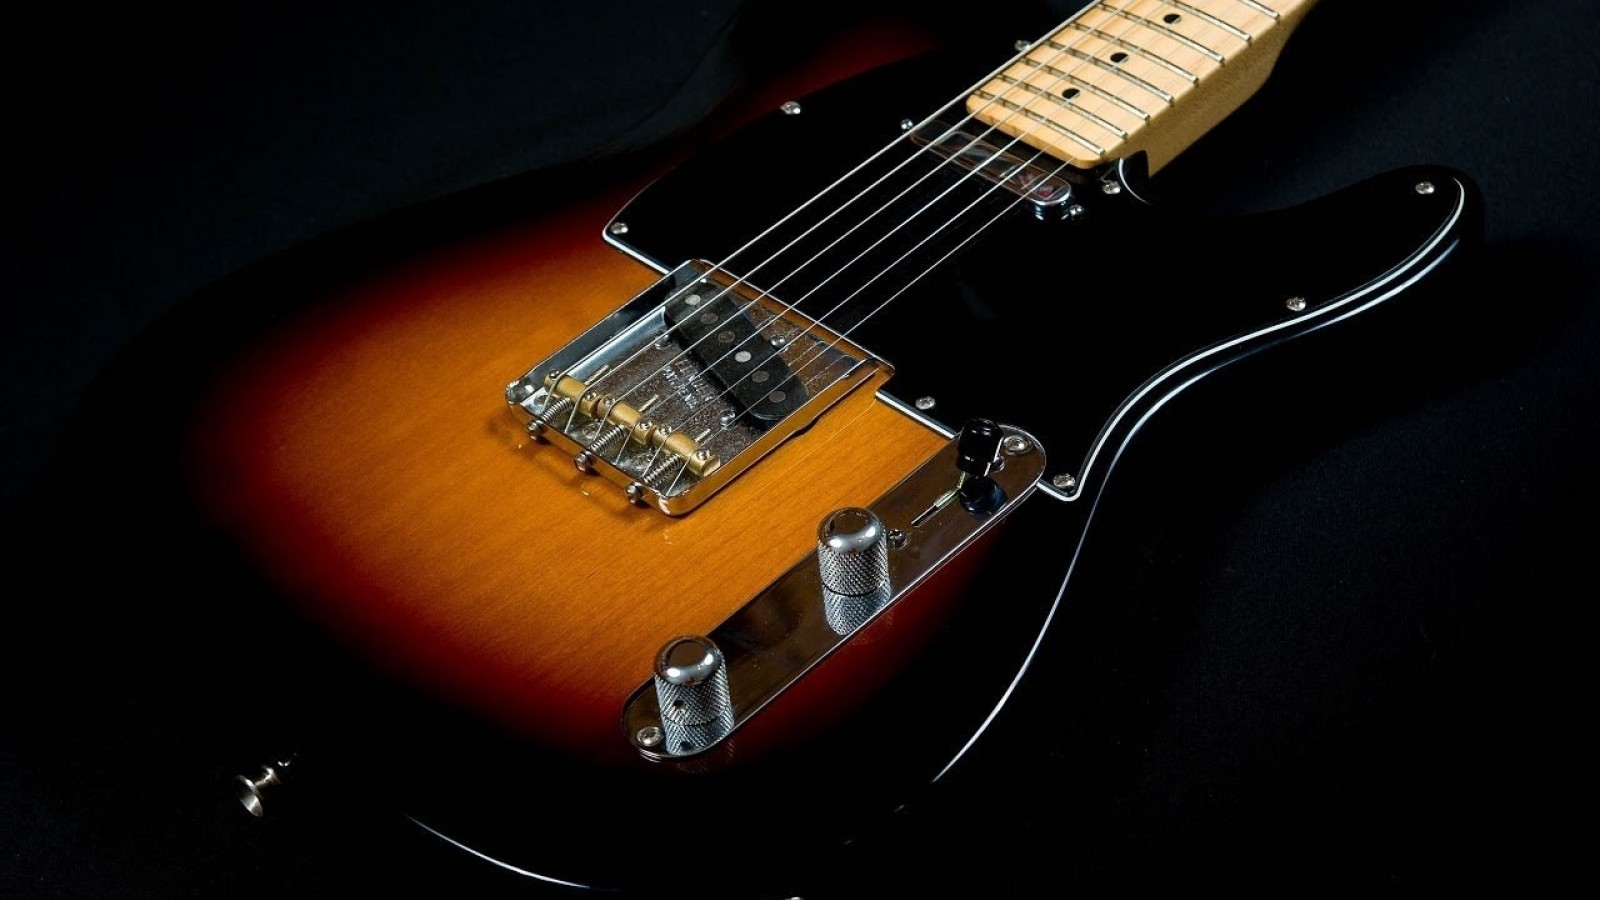 Instruments guitars electric black background telecaster musical HD Wallpaper